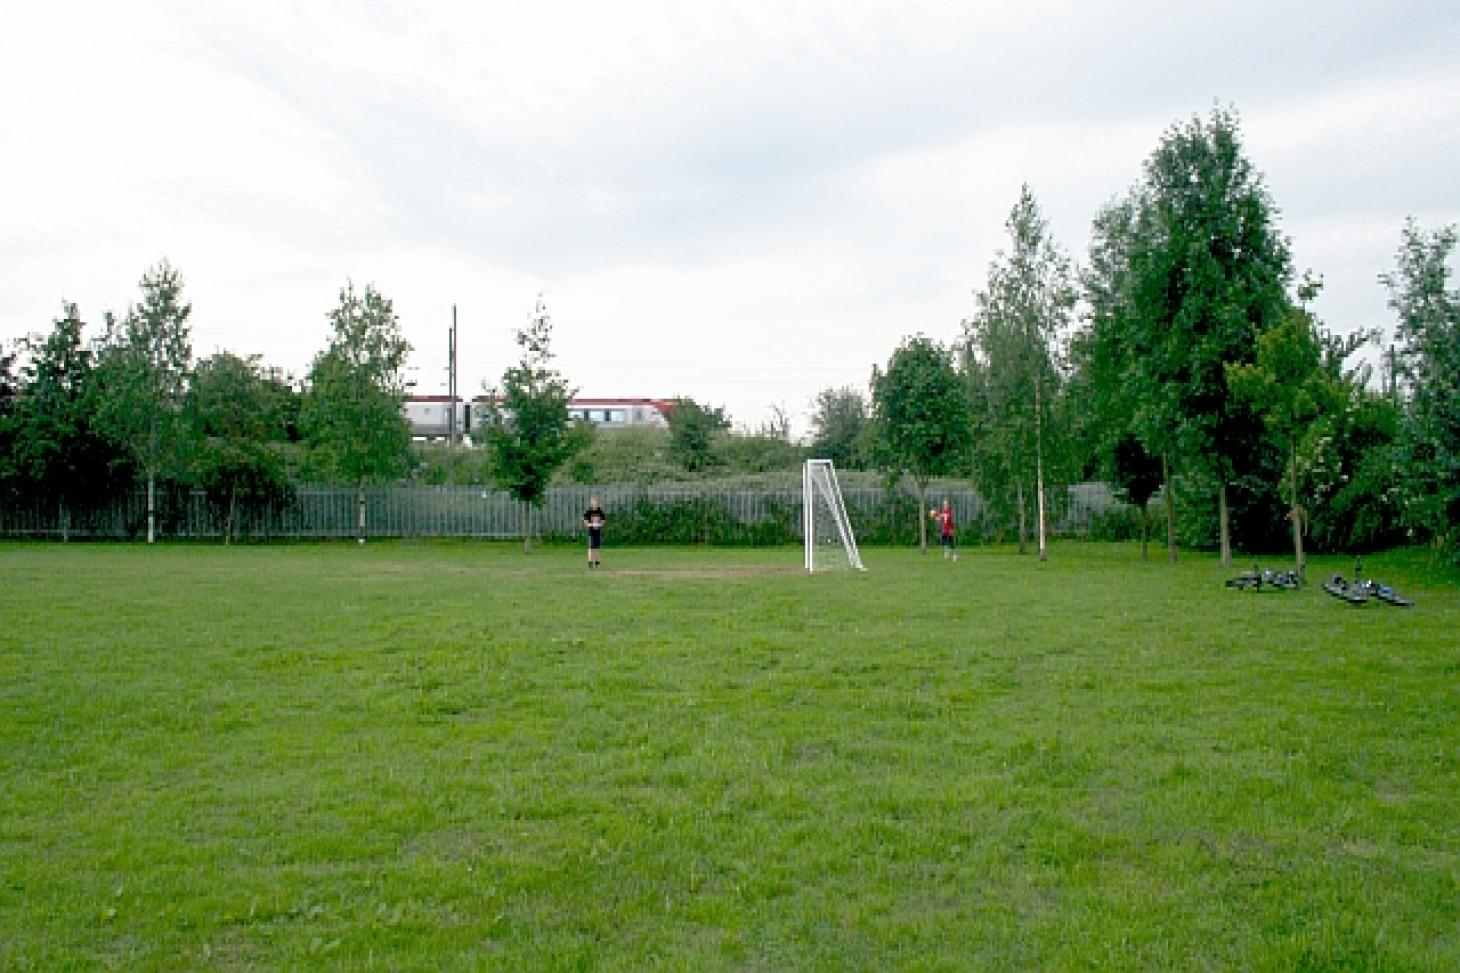 Higher Drive Recreation Groud 5 a side | Concrete football pitch